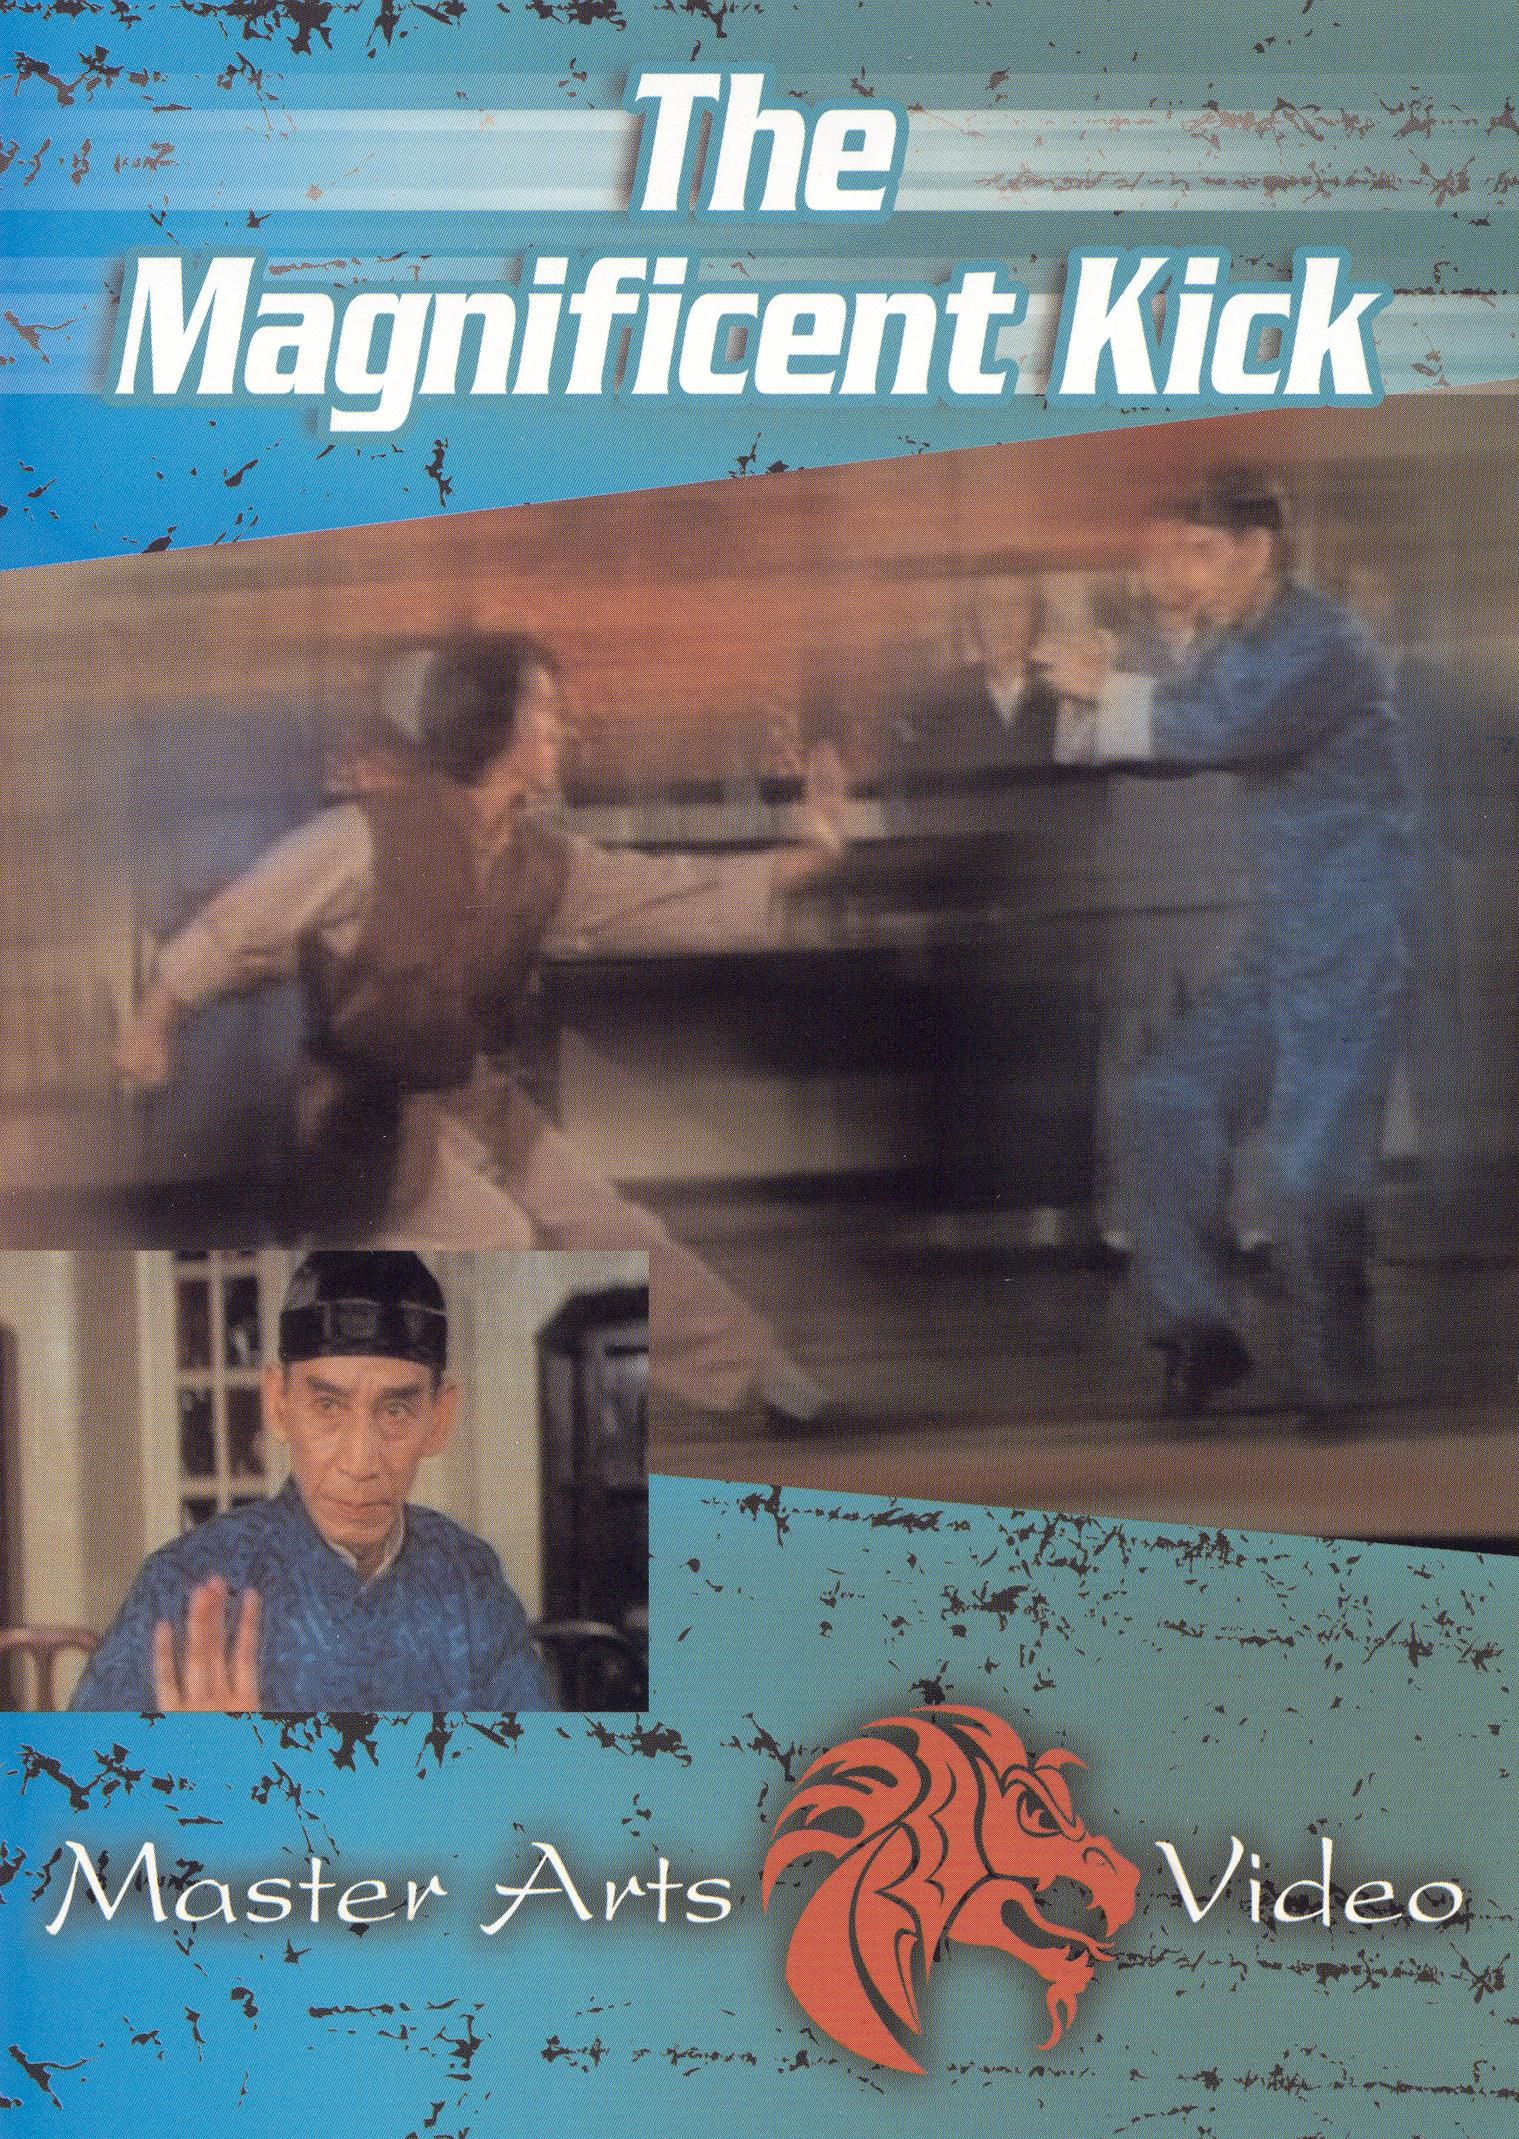 The Magnificent Kick